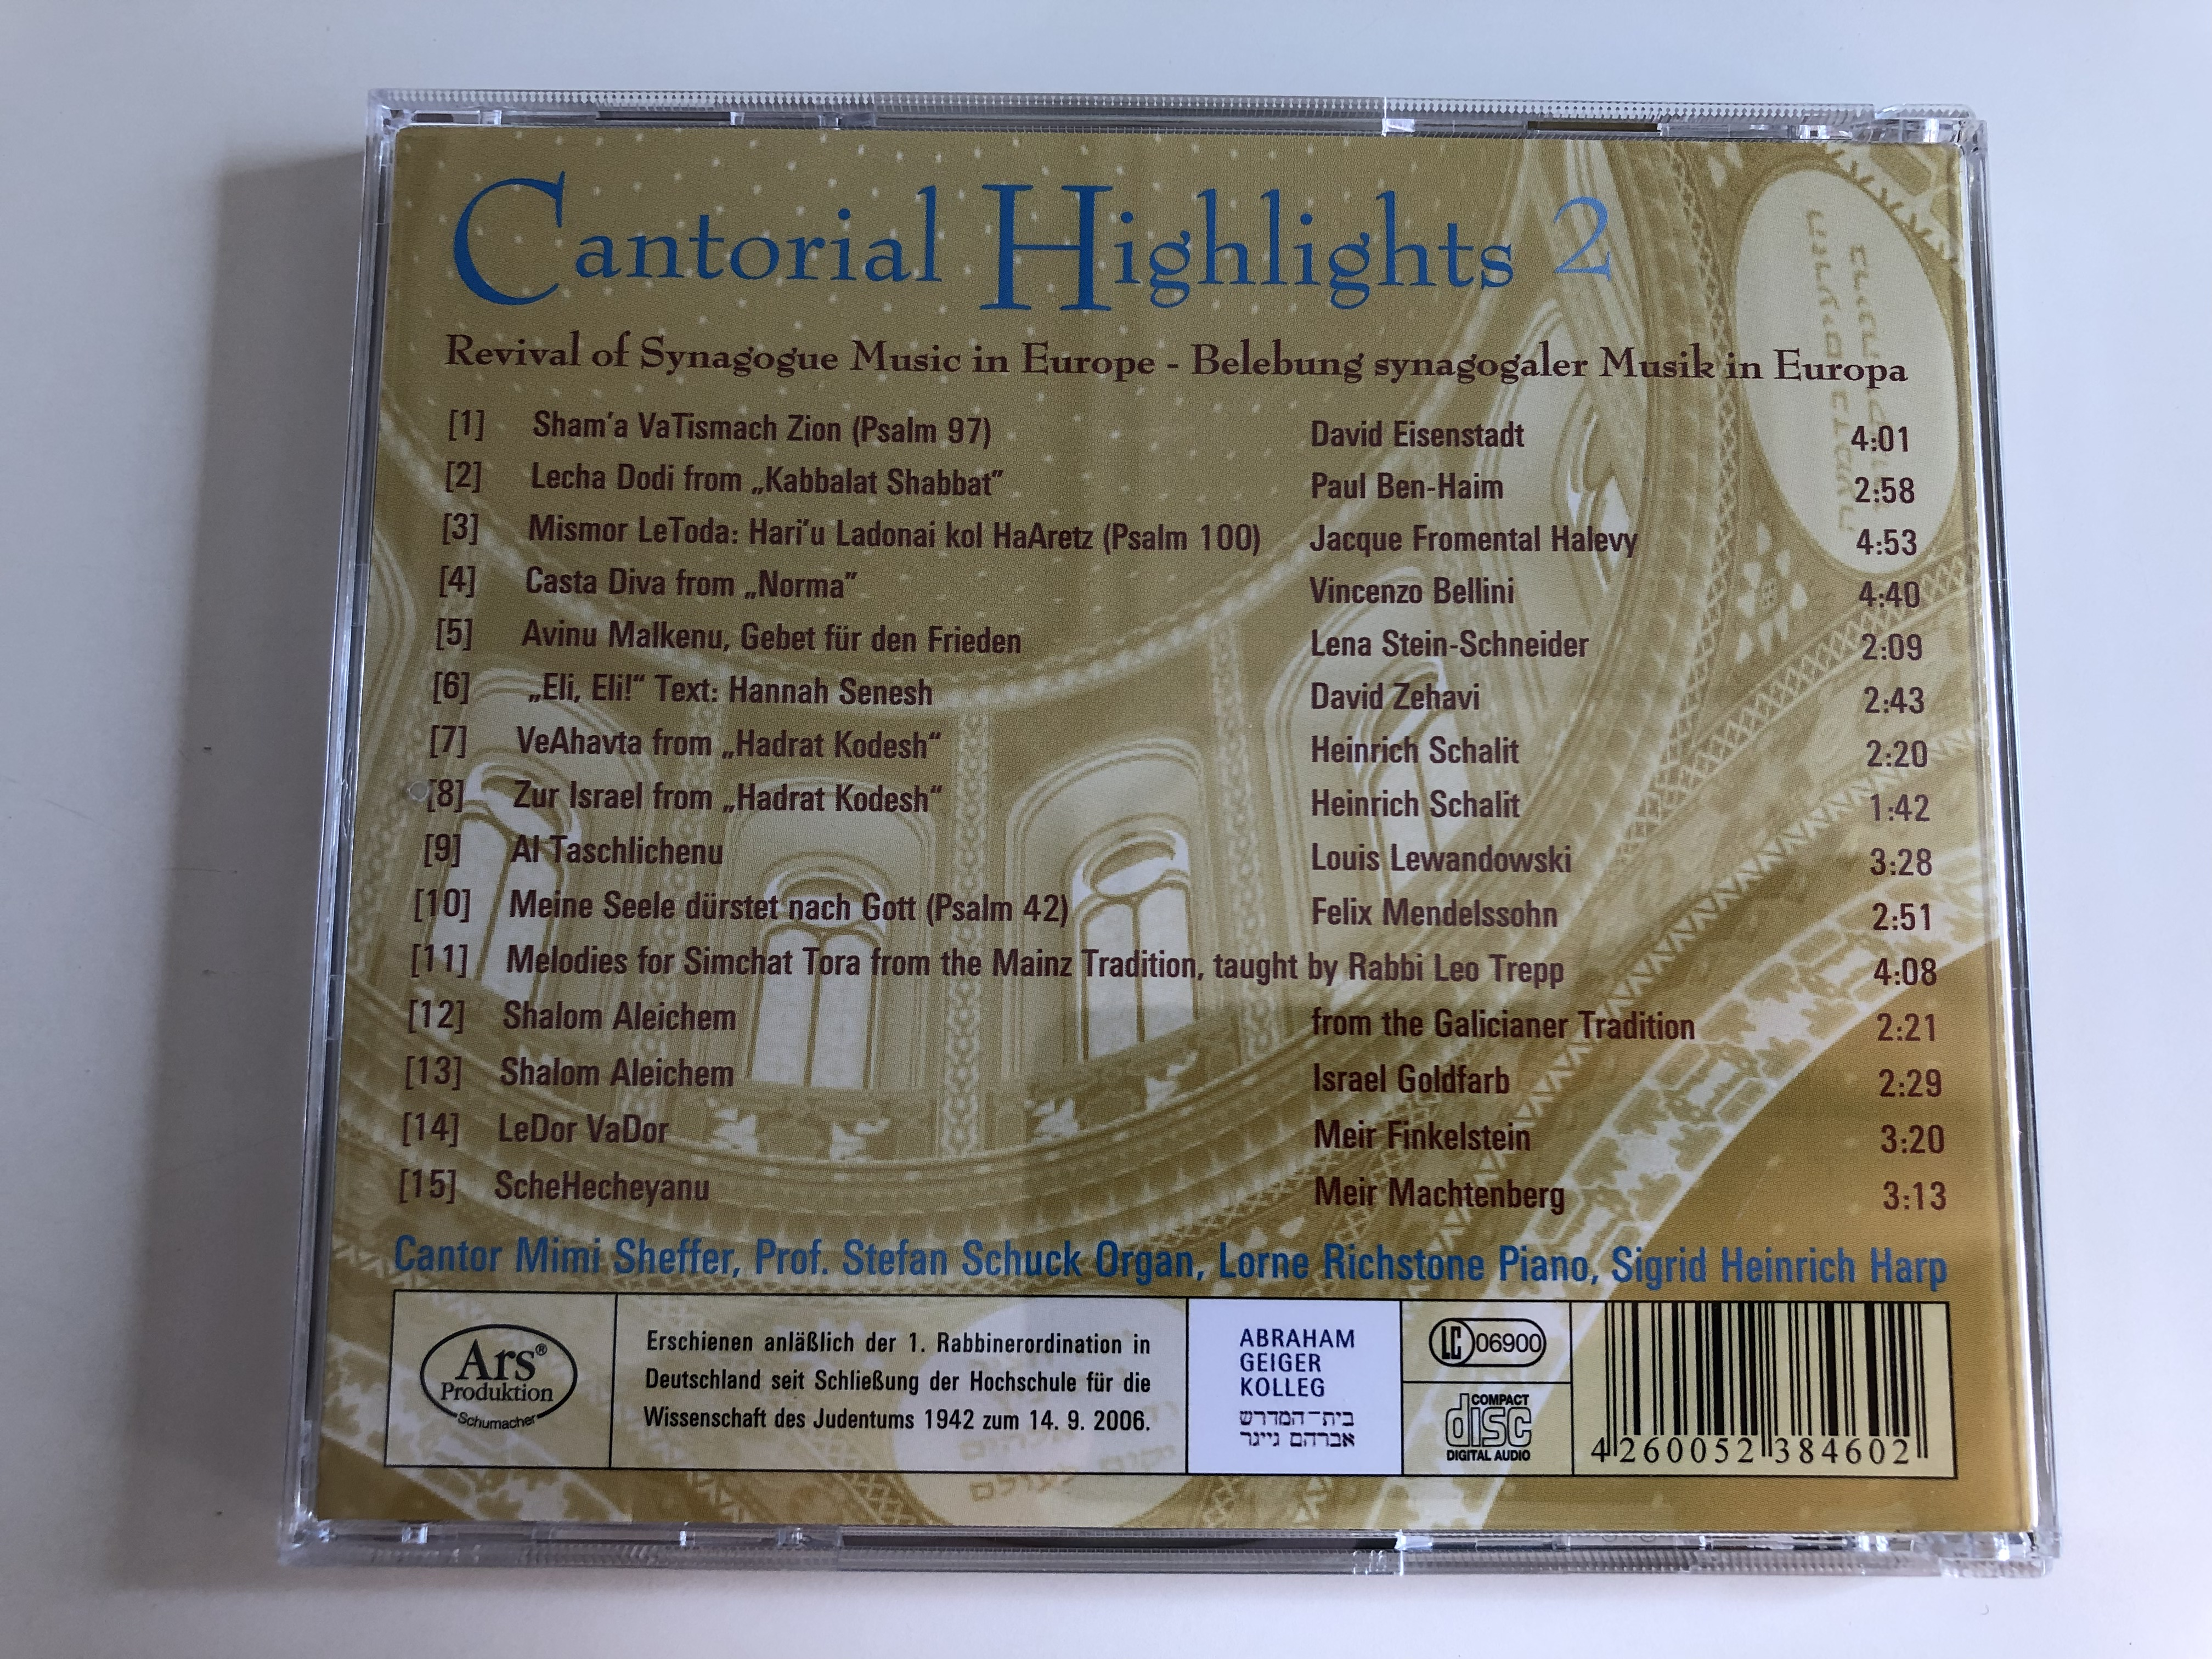 cantorial-highlights-2-revival-of-synagogue-music-in-europe-cantor-mimi-sheffer-sings-with-prof.-stefan-schuk-organ-lorne-richstone-piano-sigrid-heinrich-harp-audio-cd-2006-13-.jpg